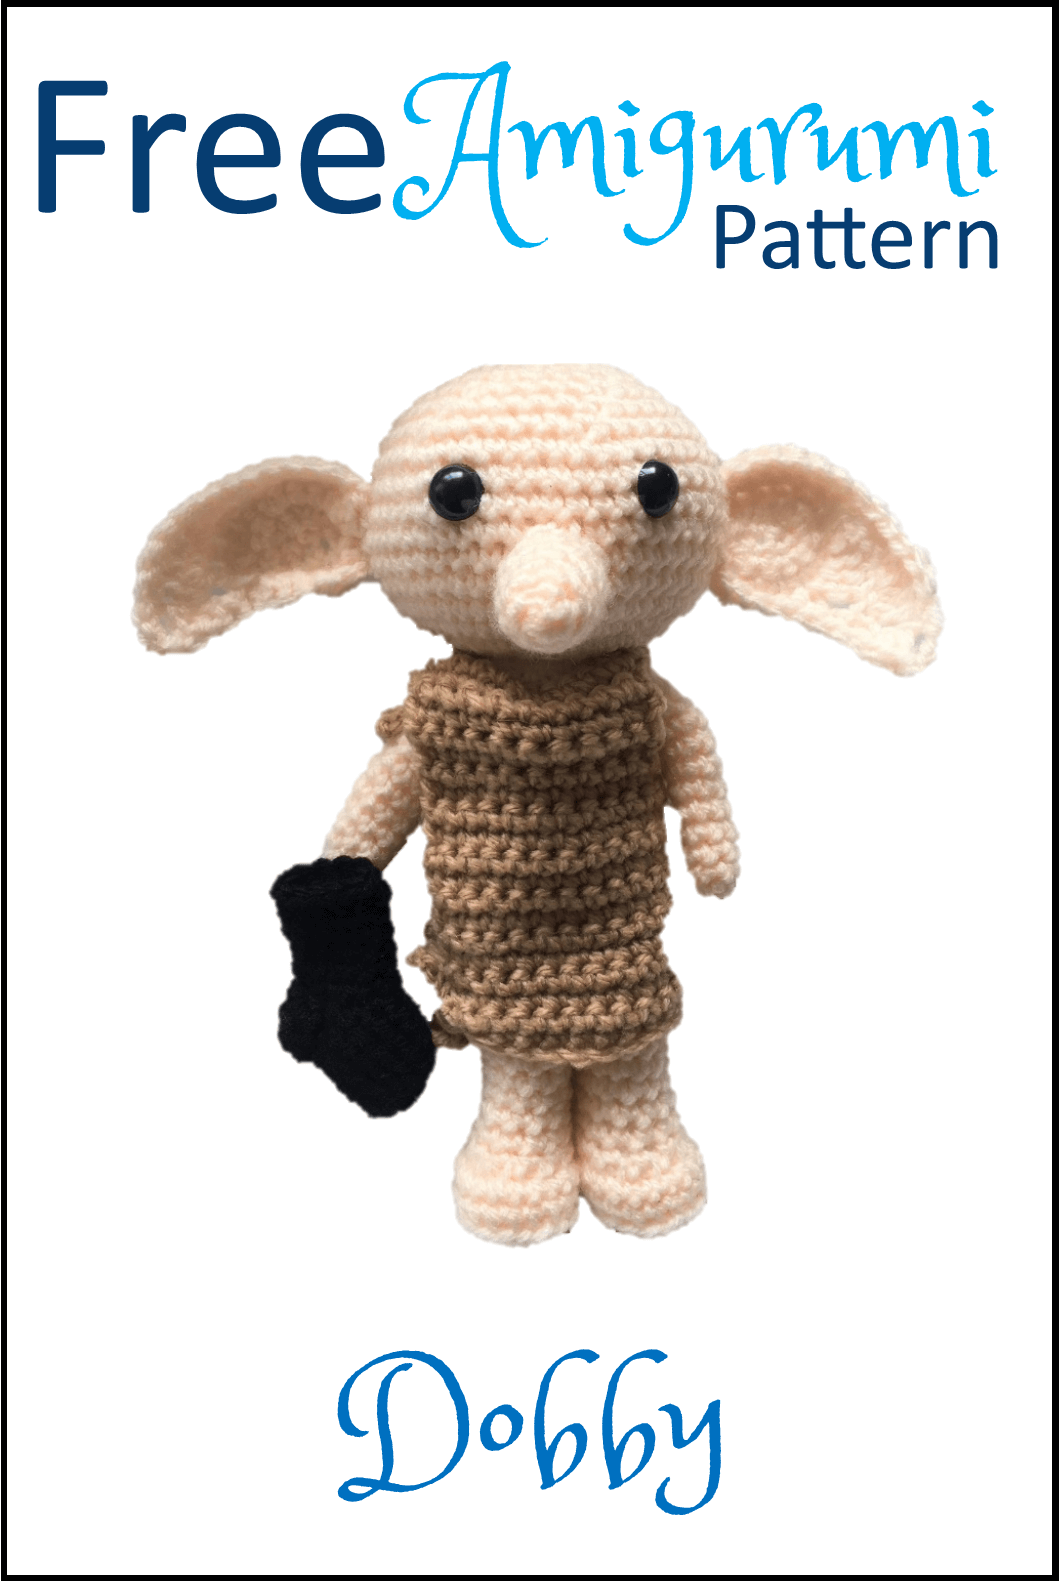 Free Dobby Amigurumi crochet pattern. Dobby is finally free! Lots of other Amigurumi patterns too - including all Dobby's Harry Potter pals #crochethatpatterns